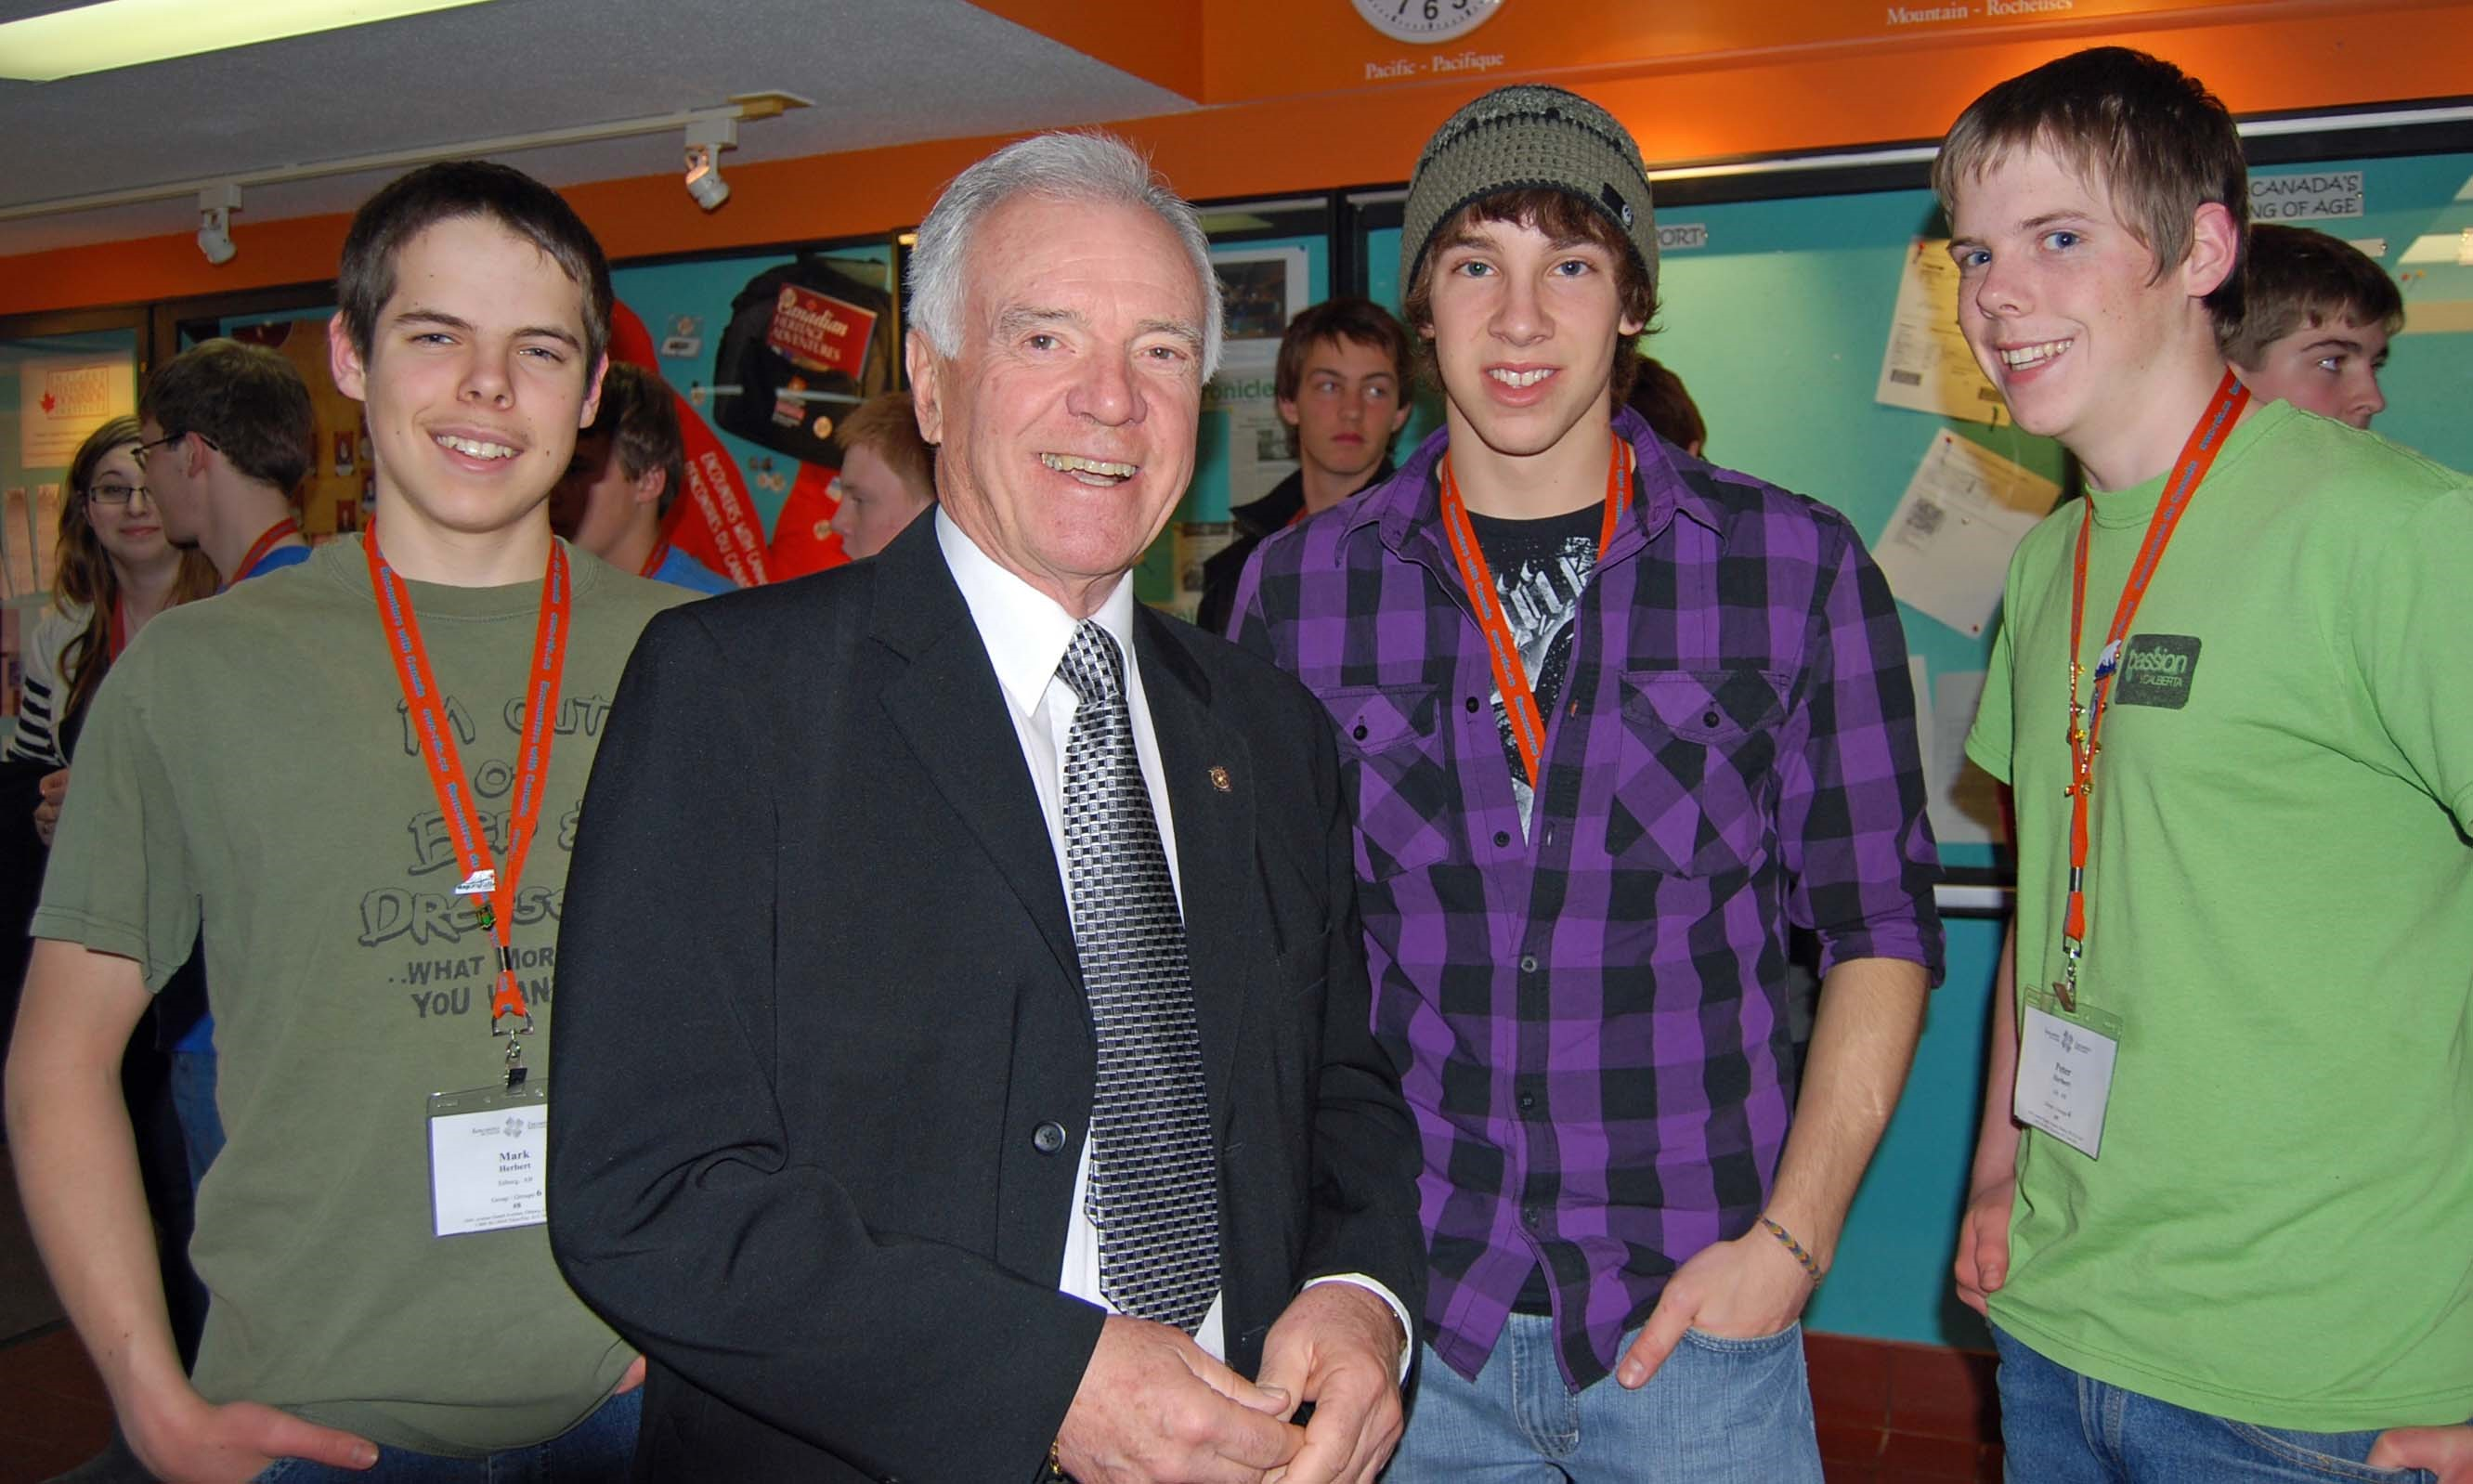 Meeting with students at the Terry Fox Canadian Youth Centre in Ottawa. The Foundation subsidized registration fees for students to attend.